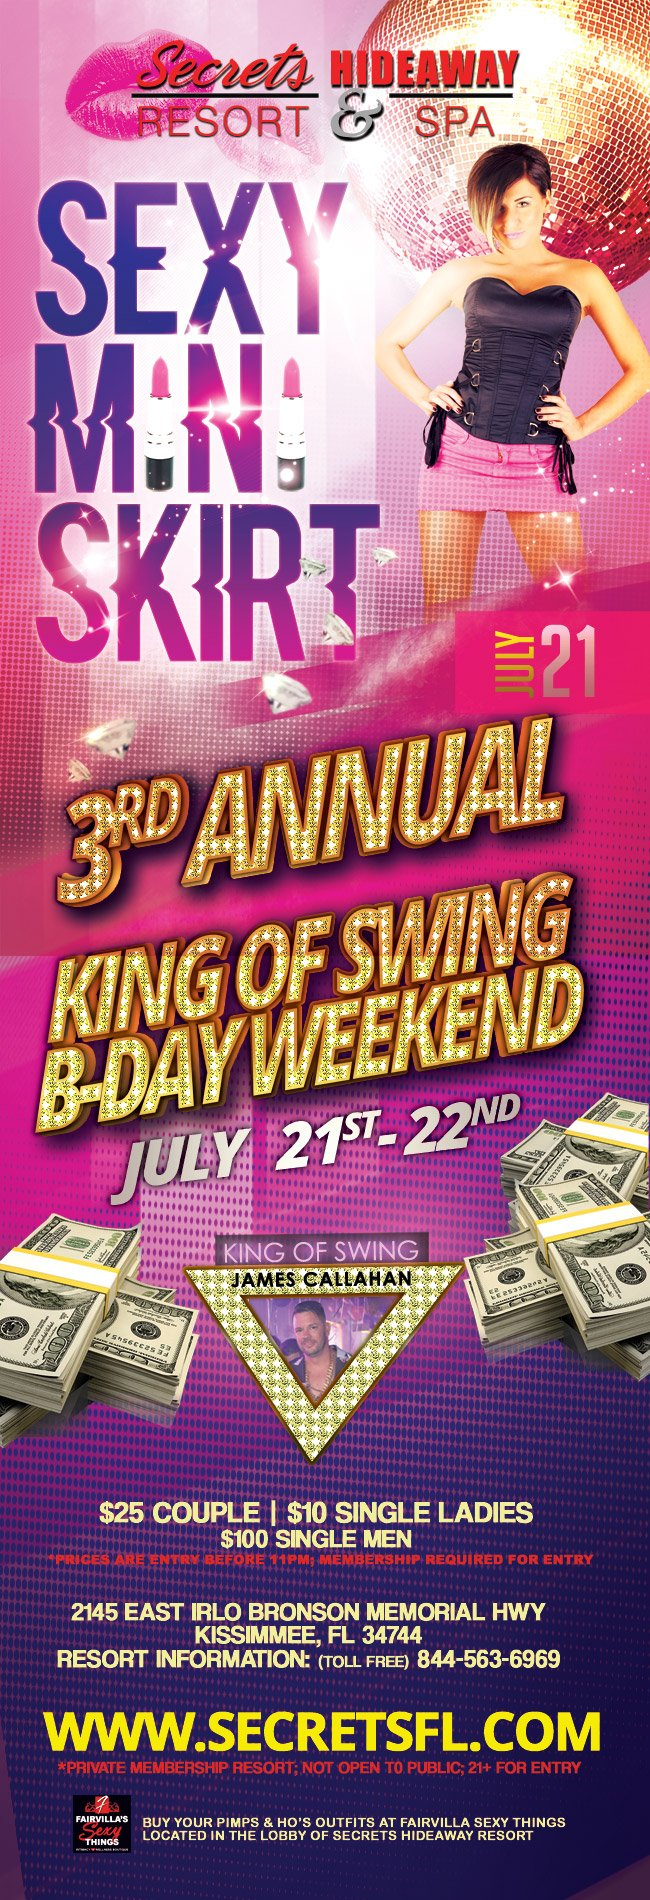 Events - Mini Skirt - King of Swing B-day Weekend Orlando, Florida Lifestyle and Swinger Parties